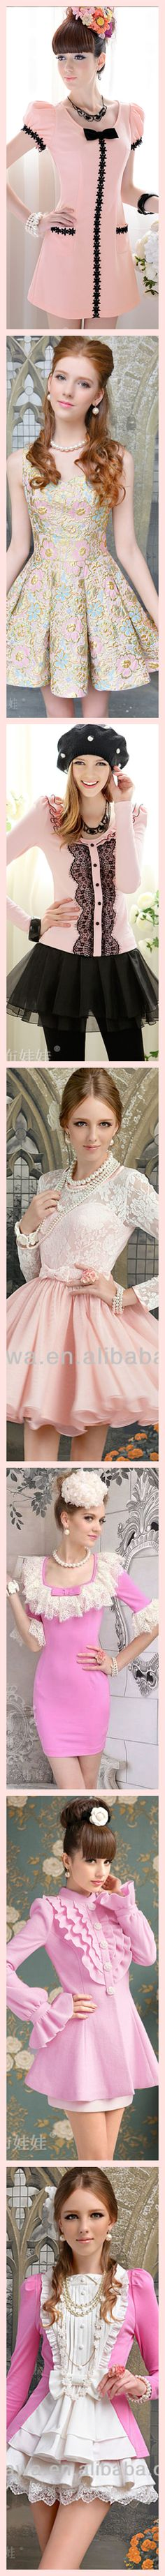 ♥ Sweet pink Dolly